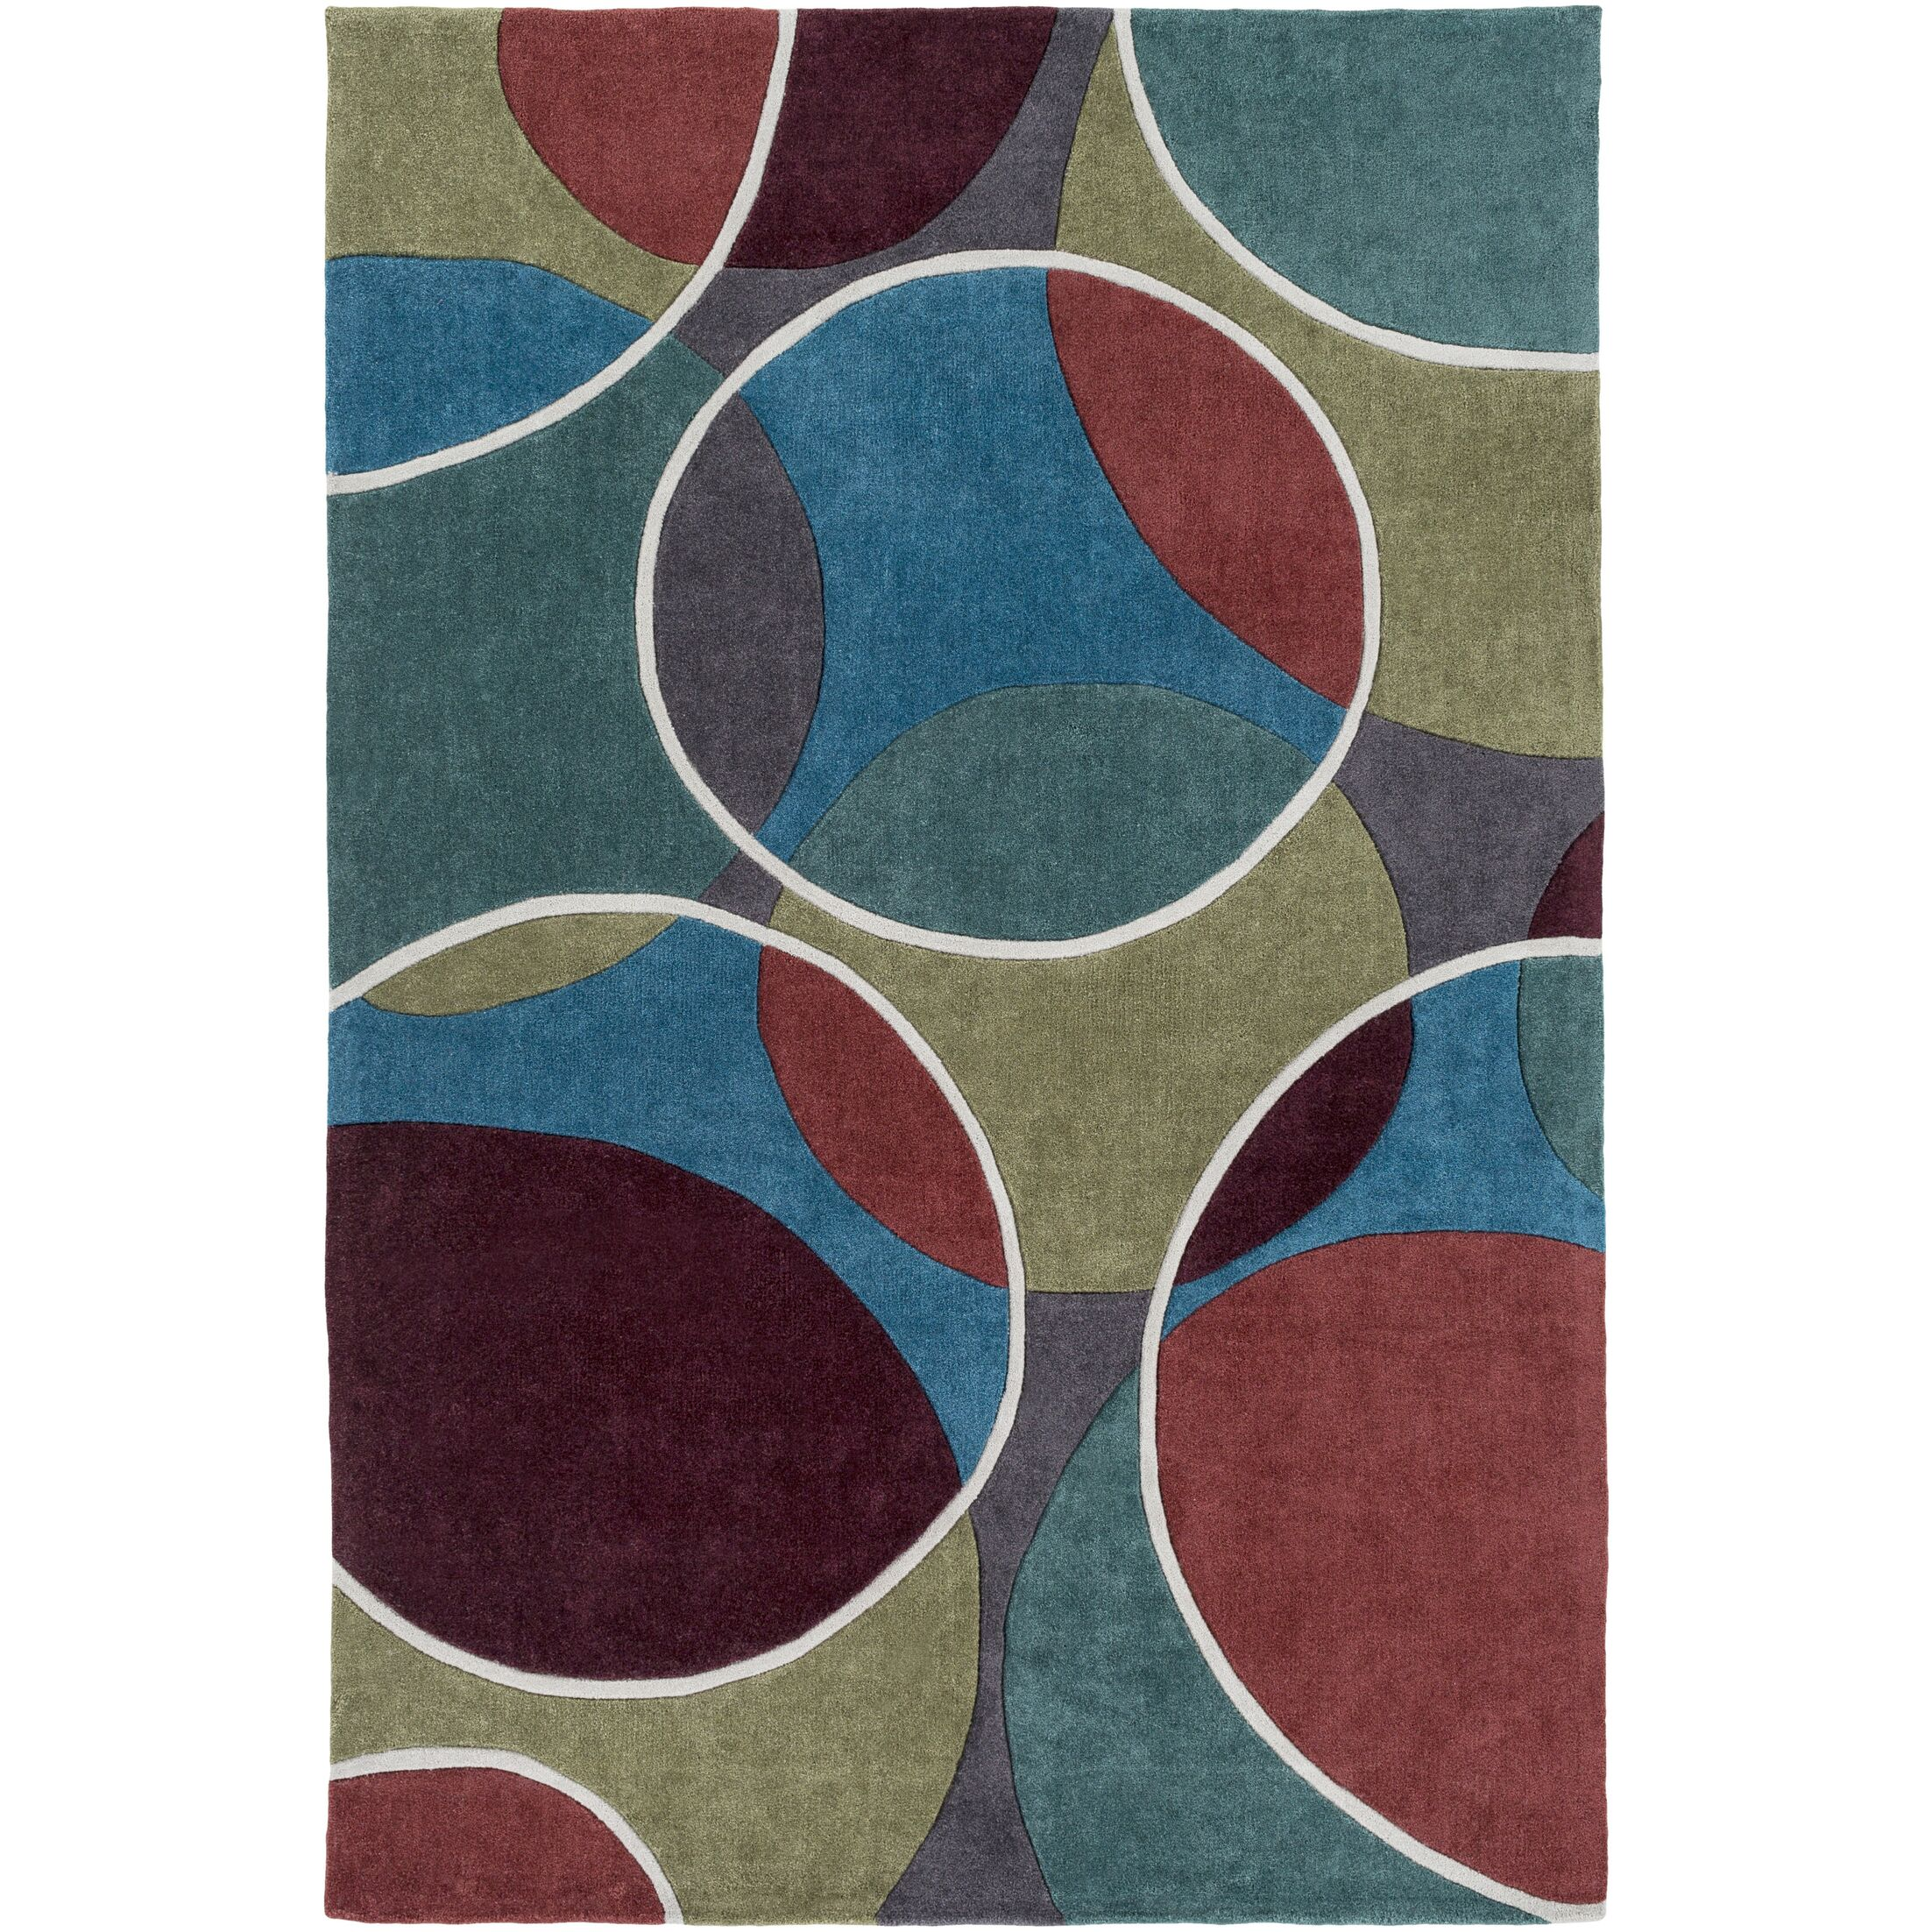 Millington Hand-Tufted Area Rug Rug Size: Rectangle 8' x 11'